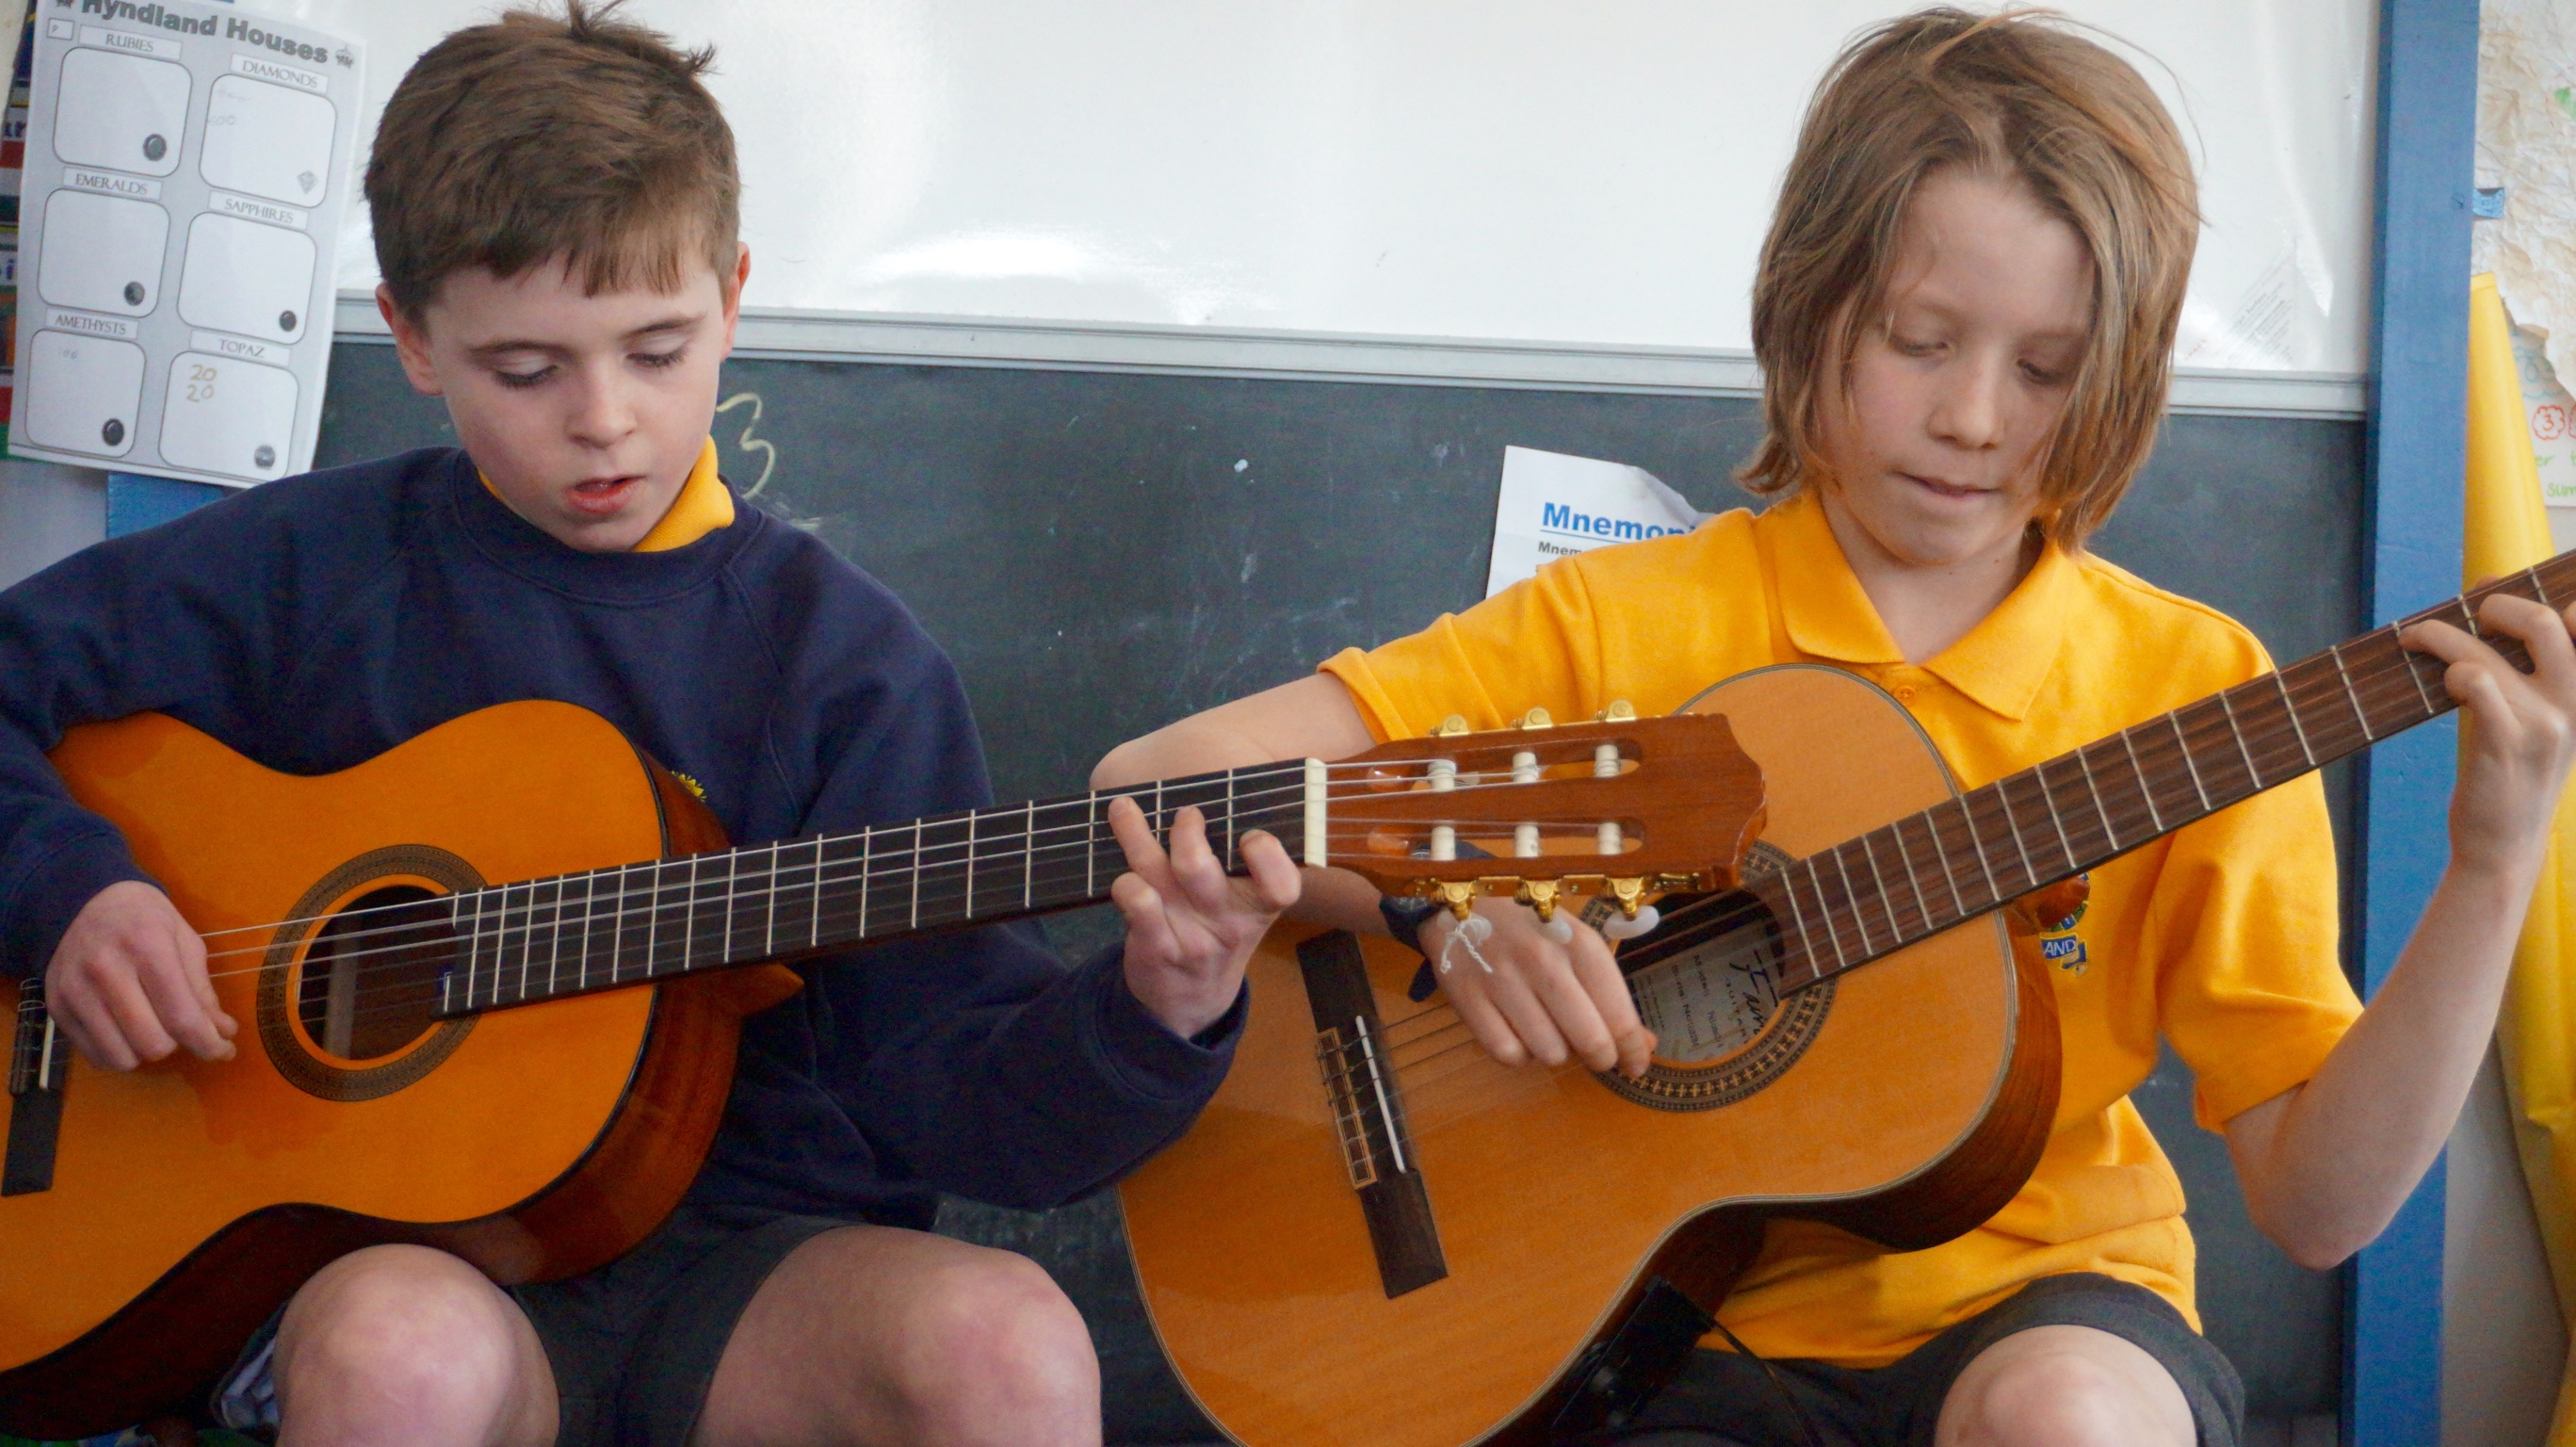 Boys playing guitar